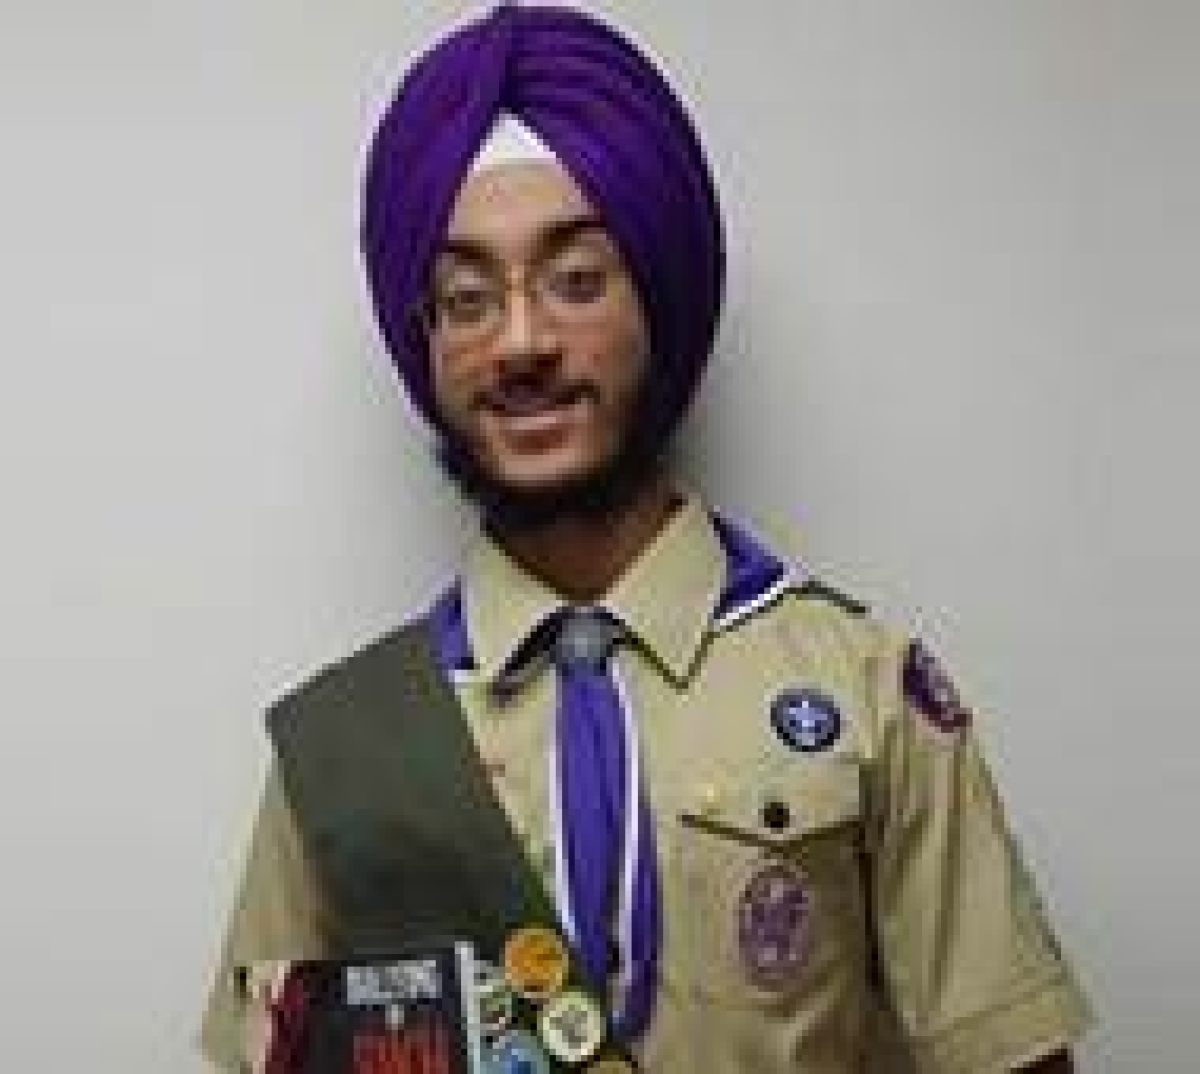 Sikh-American teen forced to remove turban at airport in US